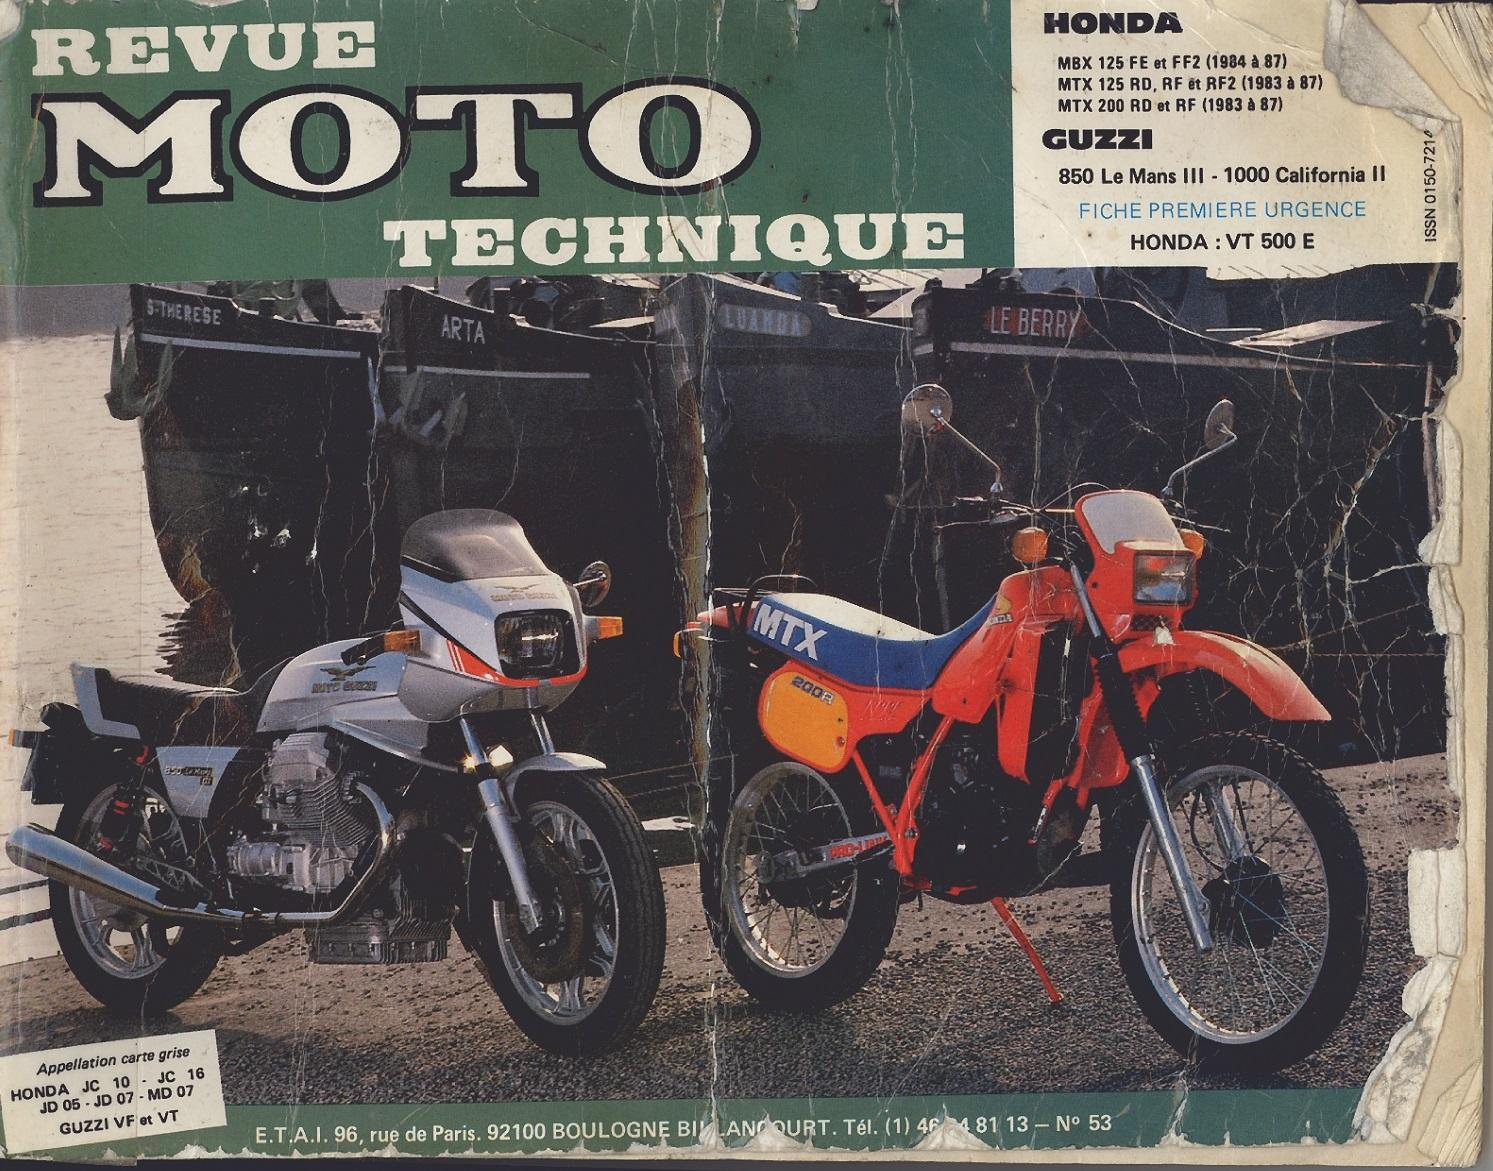 Workshop Manual for Honda MTX125RF2 (1983-1987)